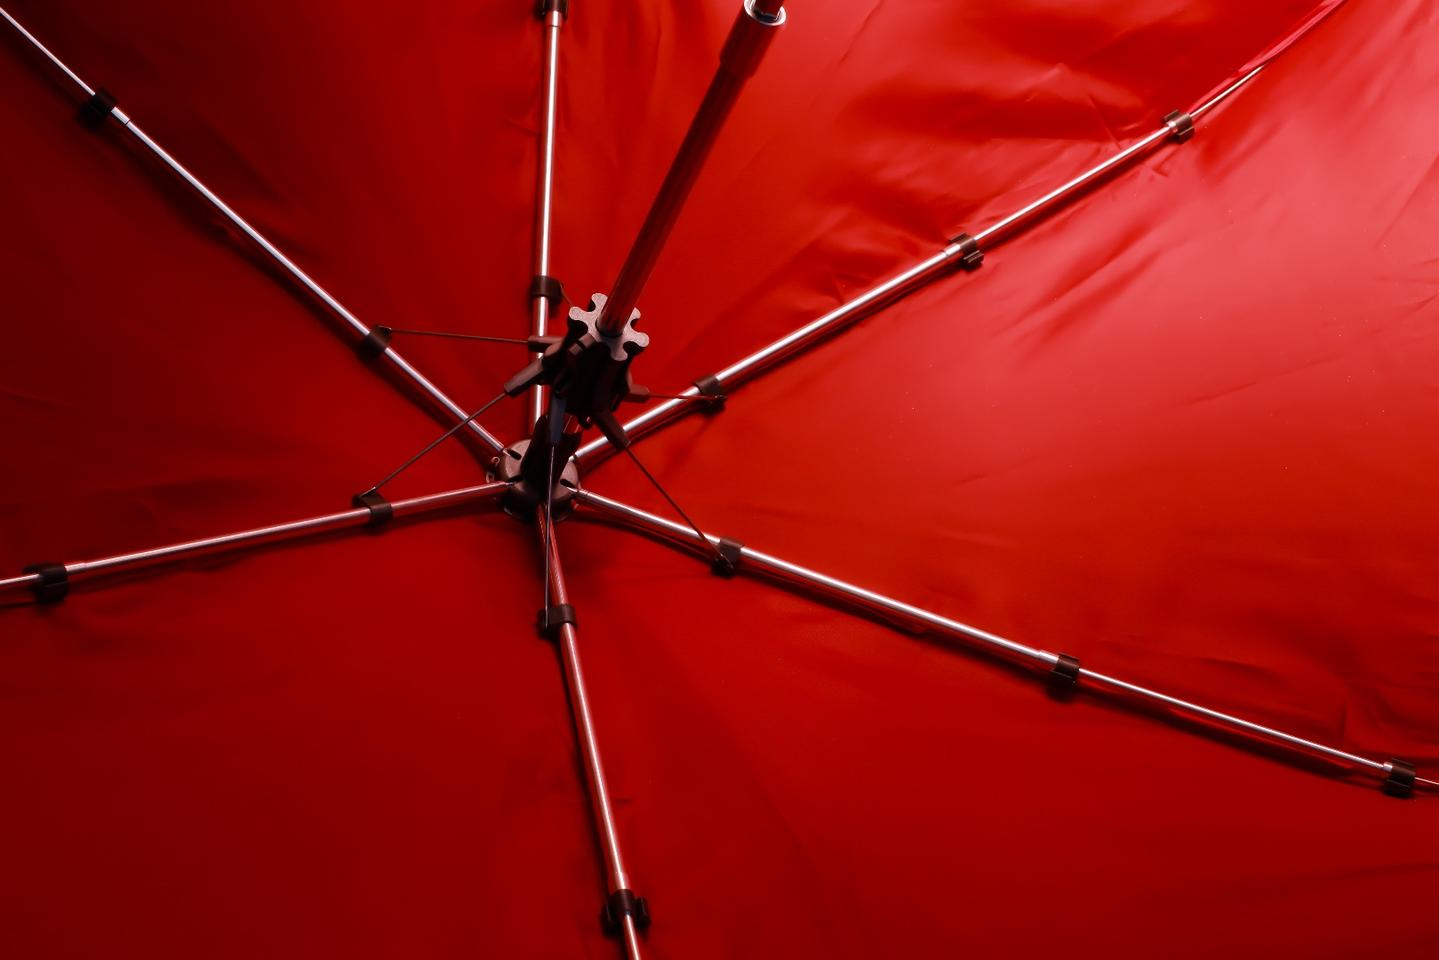 The Cypress Umbrella is designed so that each rib is able to pivot and adjust independently from the others